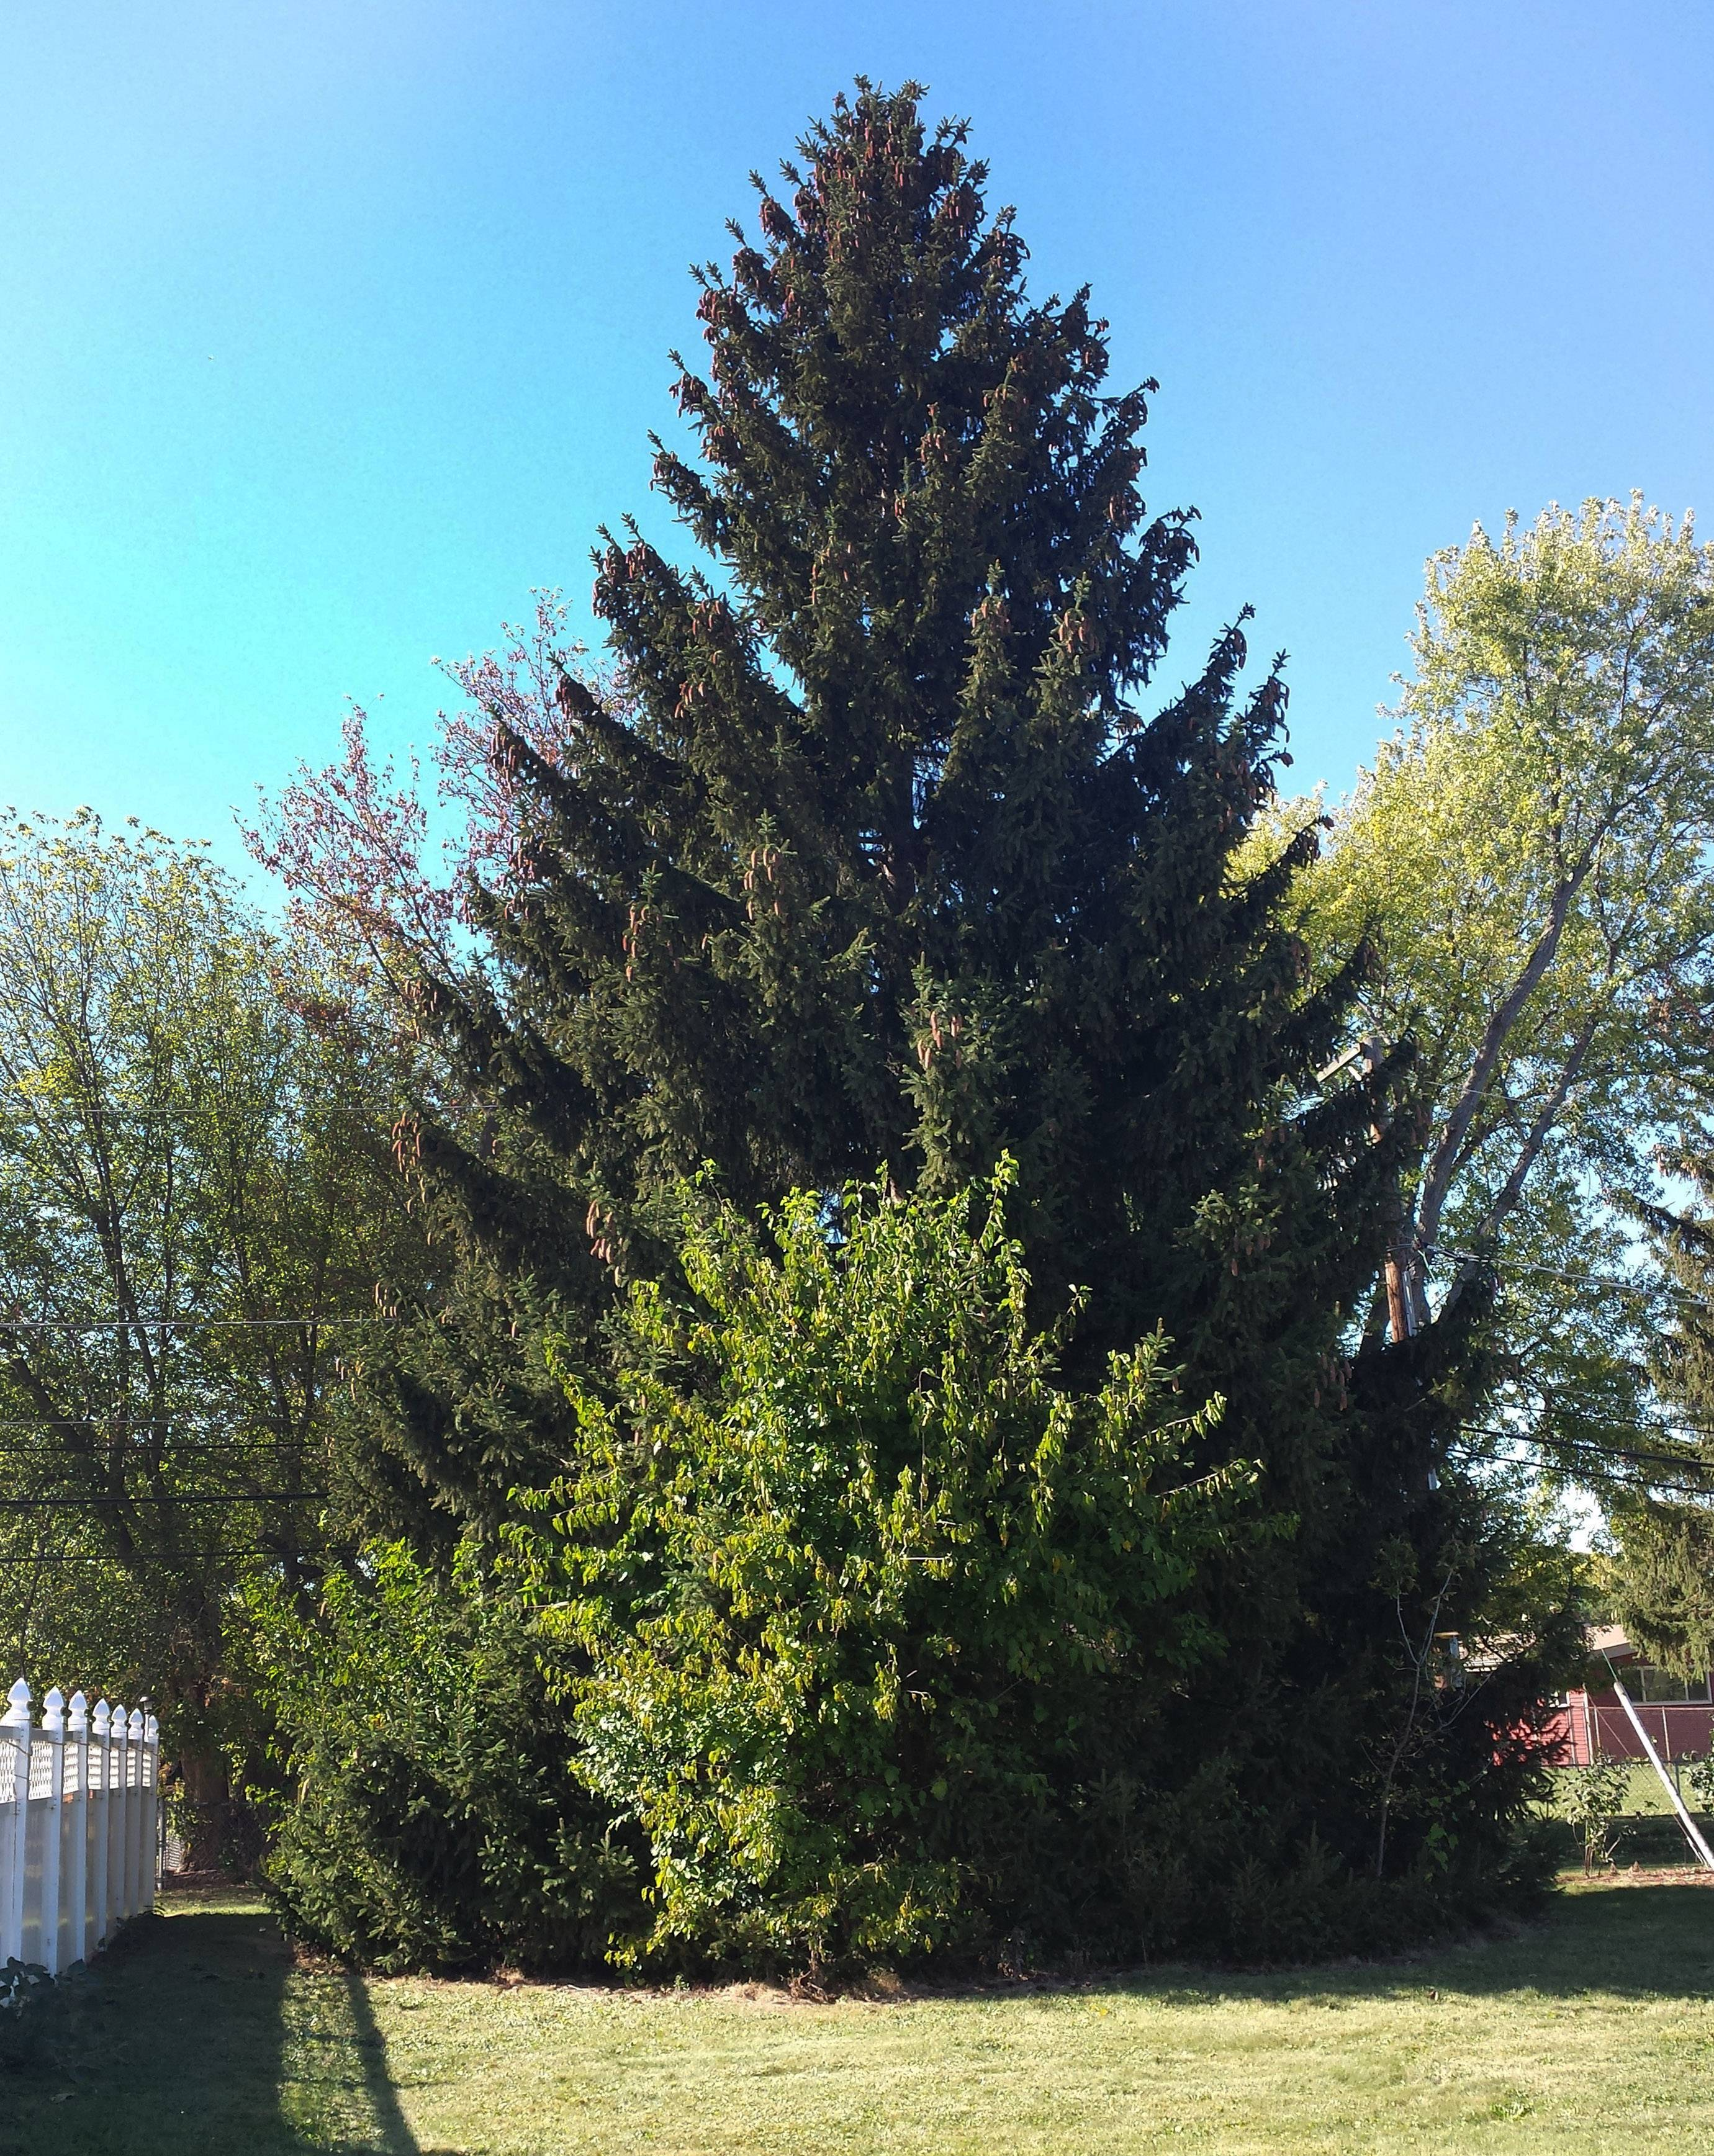 This is one of the photos Grayslake resident Ed Dorfler submitted of his 62-foot Norway spruce that was chosen to be Chicago's official Christmas tree. It will be decorated and lit up for the holidays at Millennium Park.